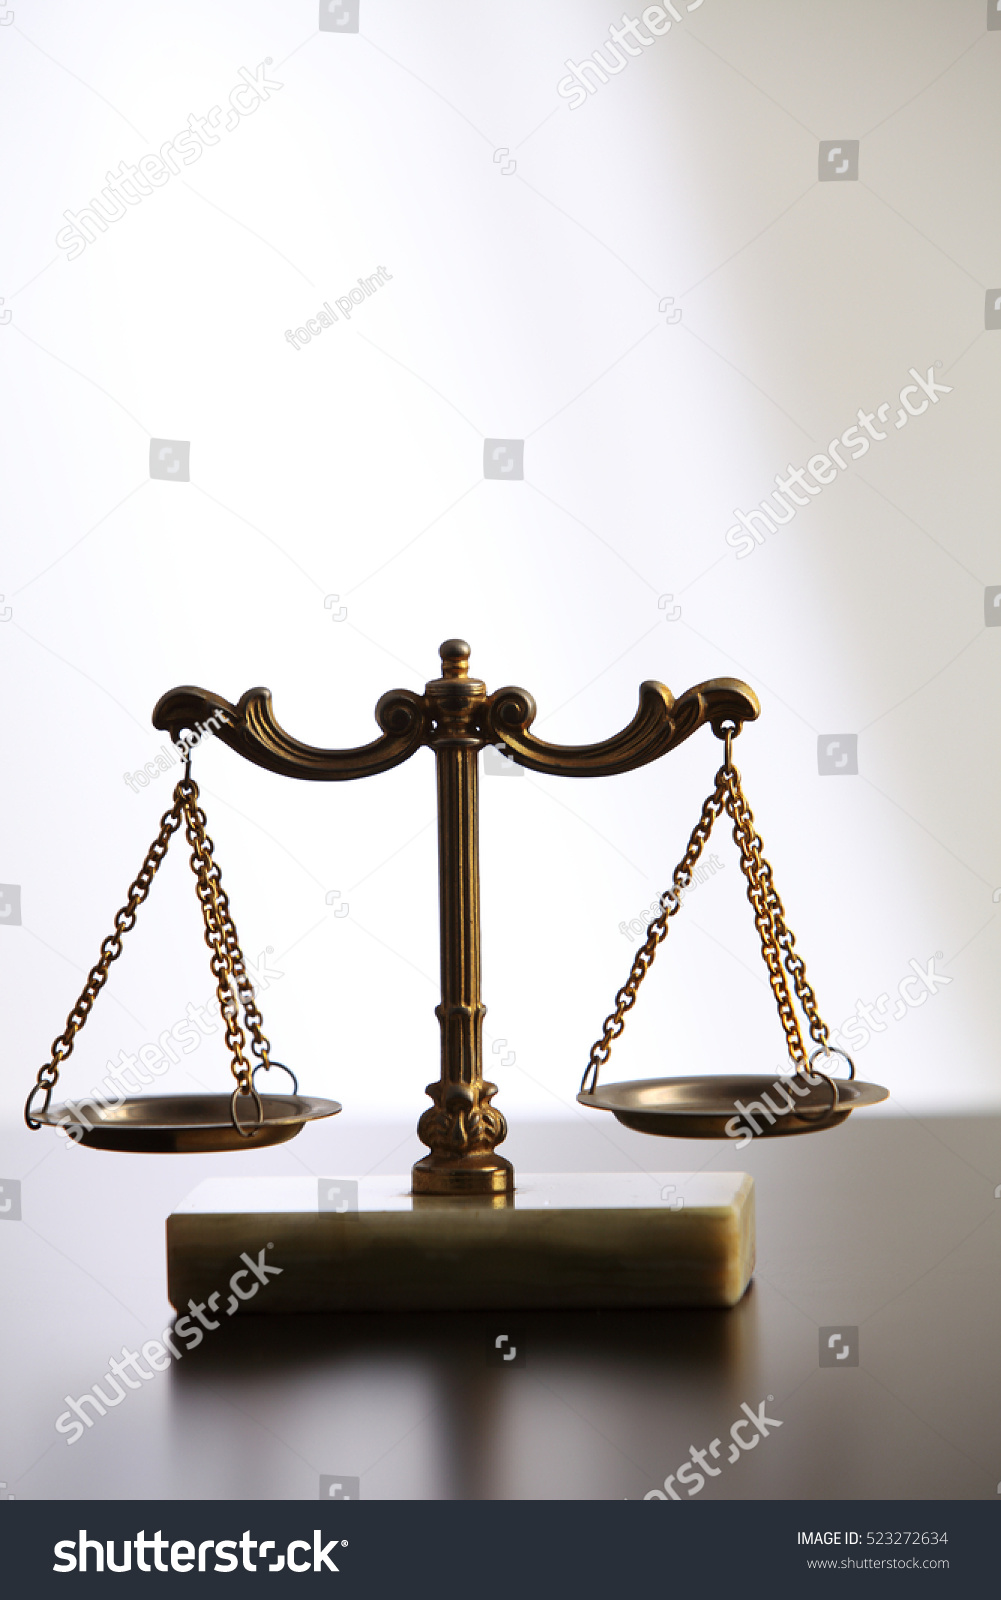 Symbol Justice A Balance Scales Stock Photo Royalty Free 523272634